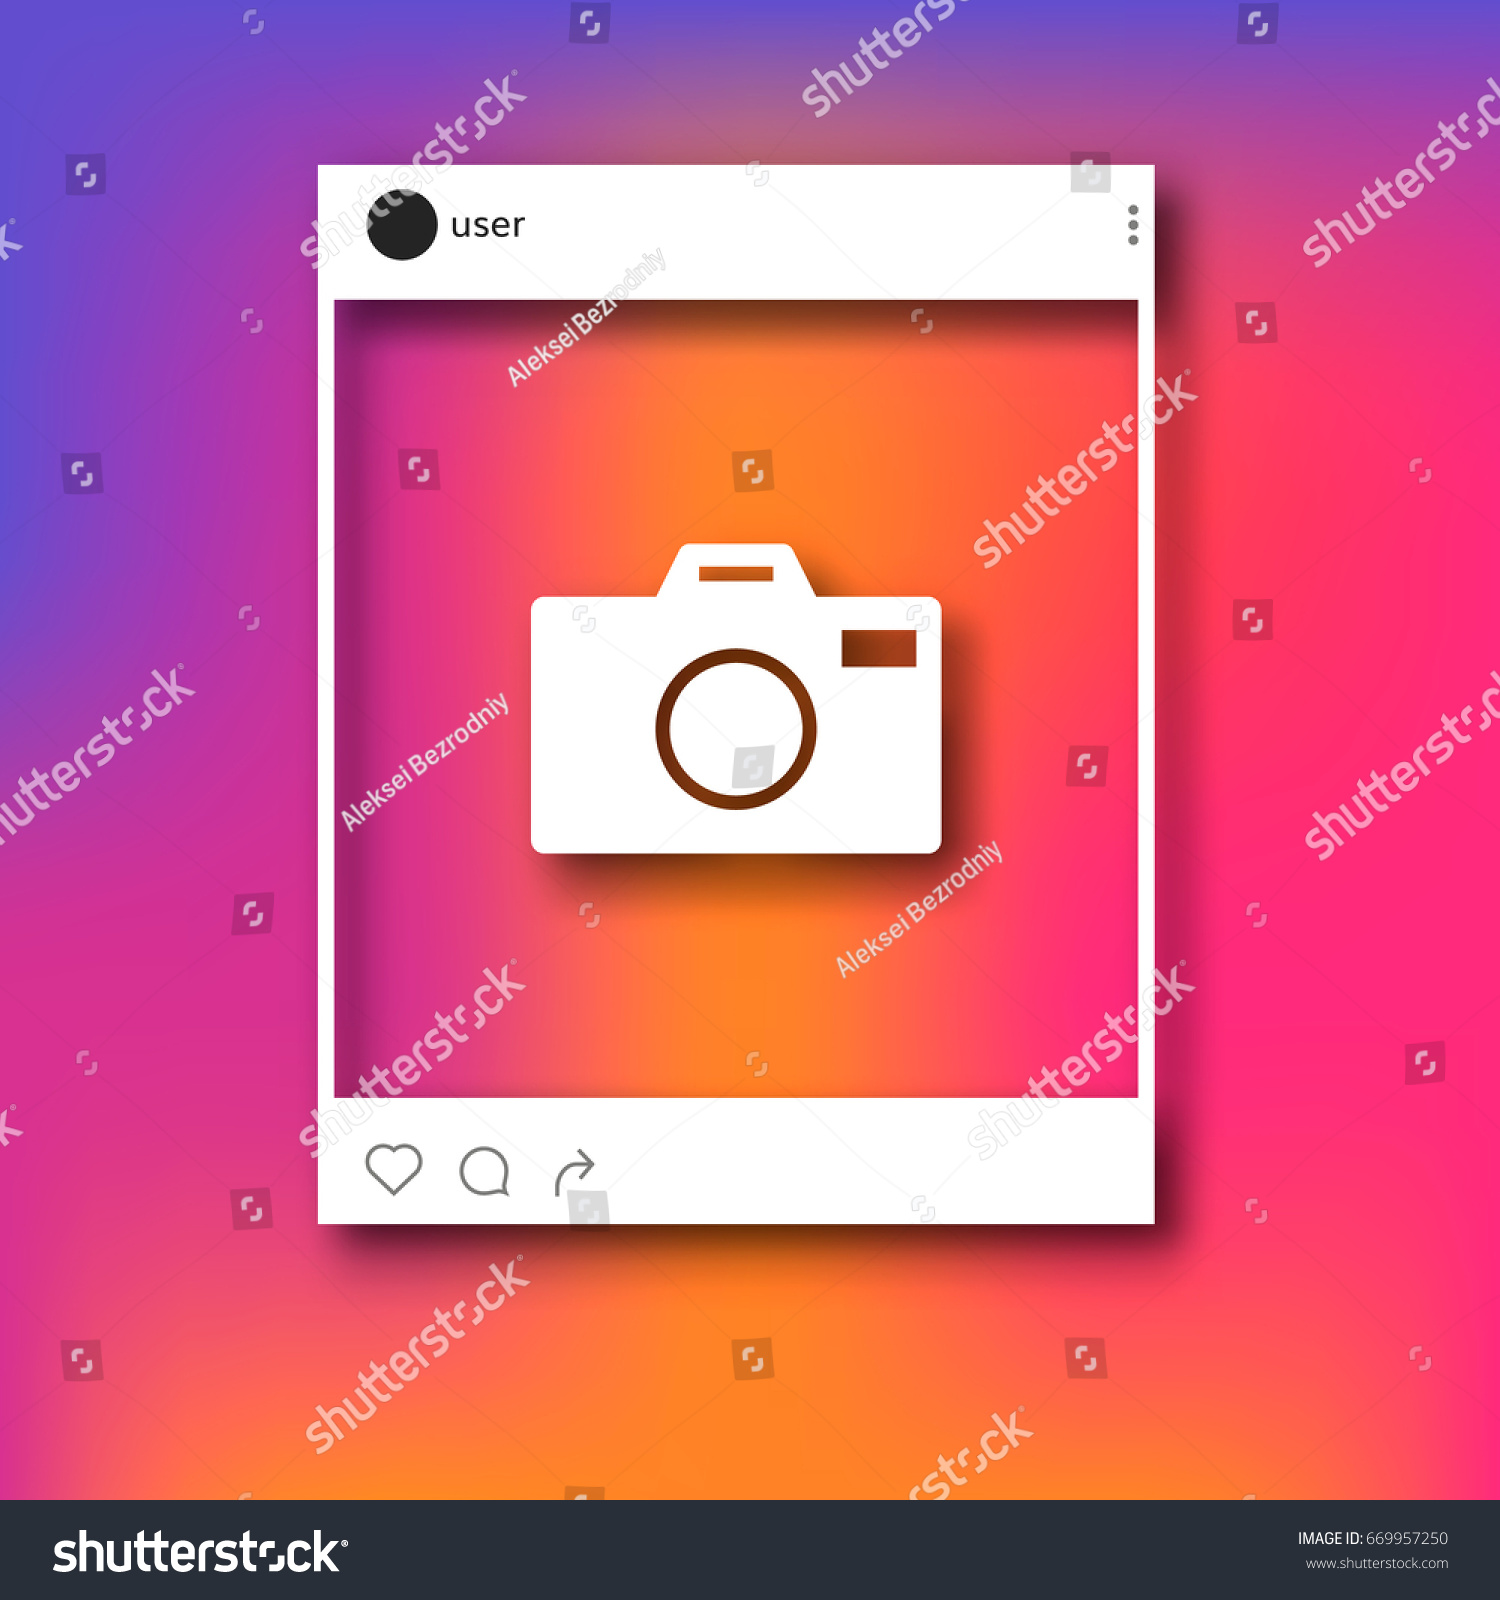 Home Design App For Kindle Fire List Of Synonyms And Antonyms Of The Word Instagram Post